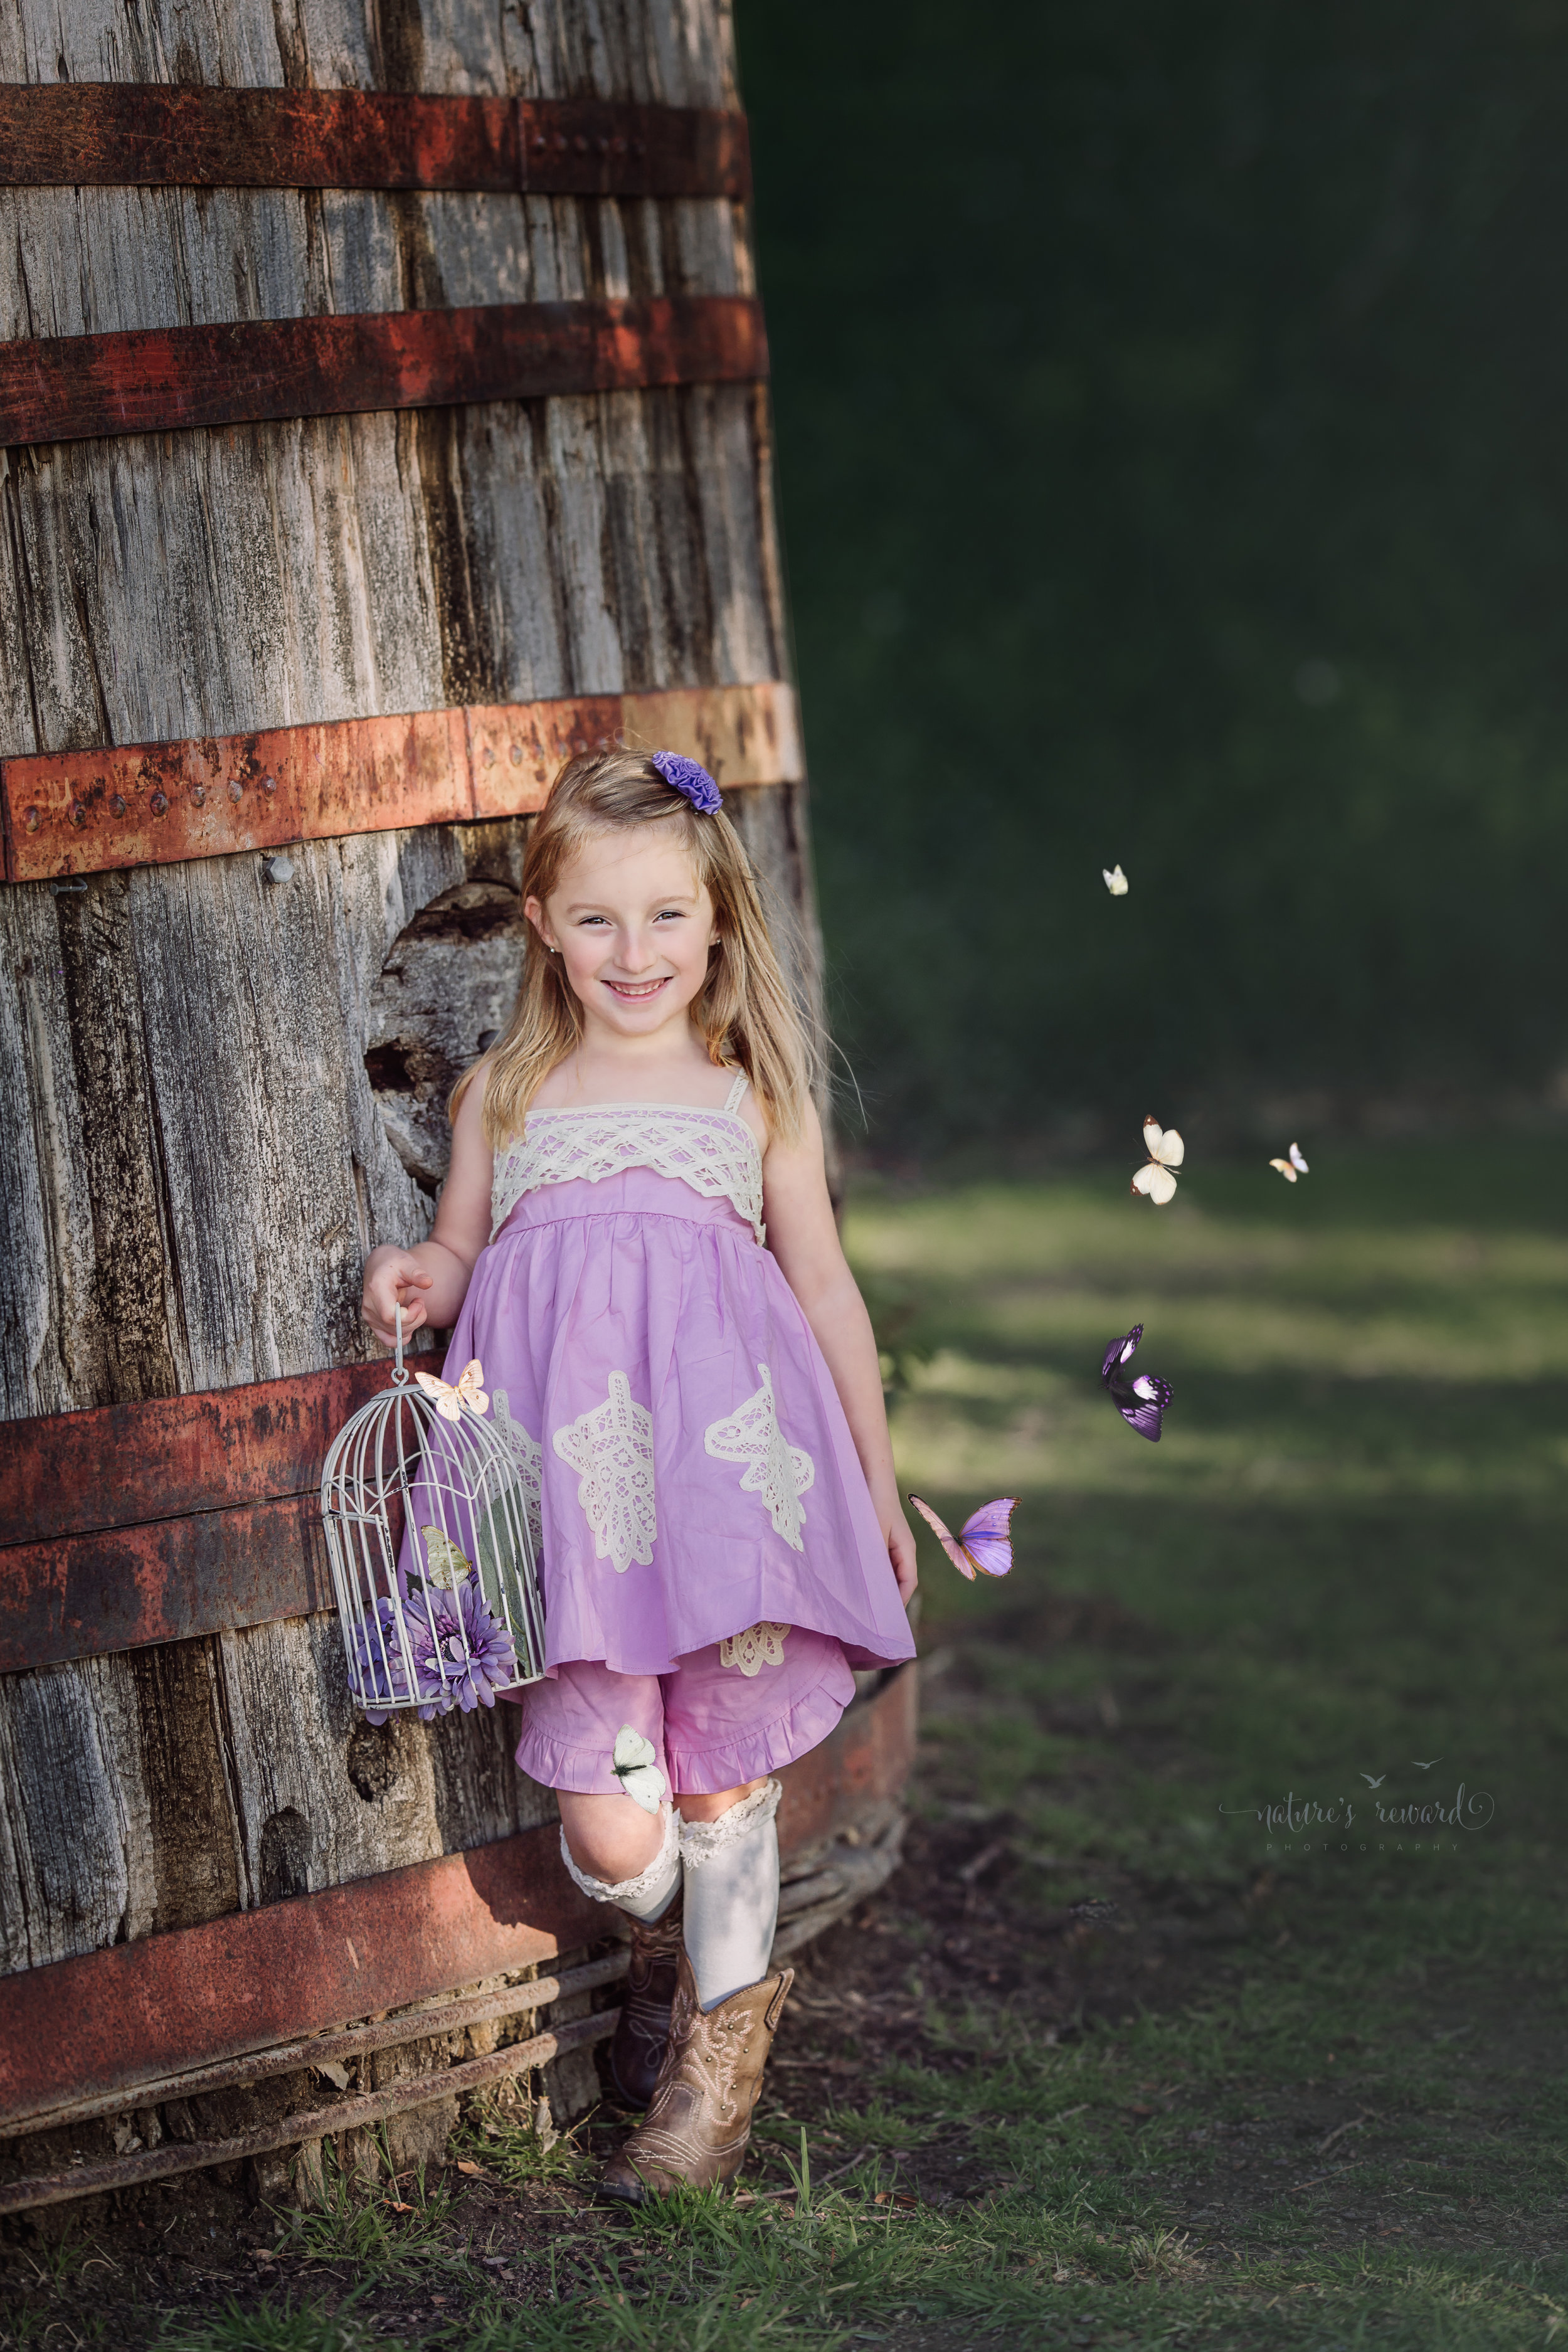 Butterfree in a purple dress and long stockings and cowgirl boots with a bird cage containing purple flowers and a butterfly while butterflies flutter around her in the composite piece by Nature's Reward Photography, a Southern California Photographer